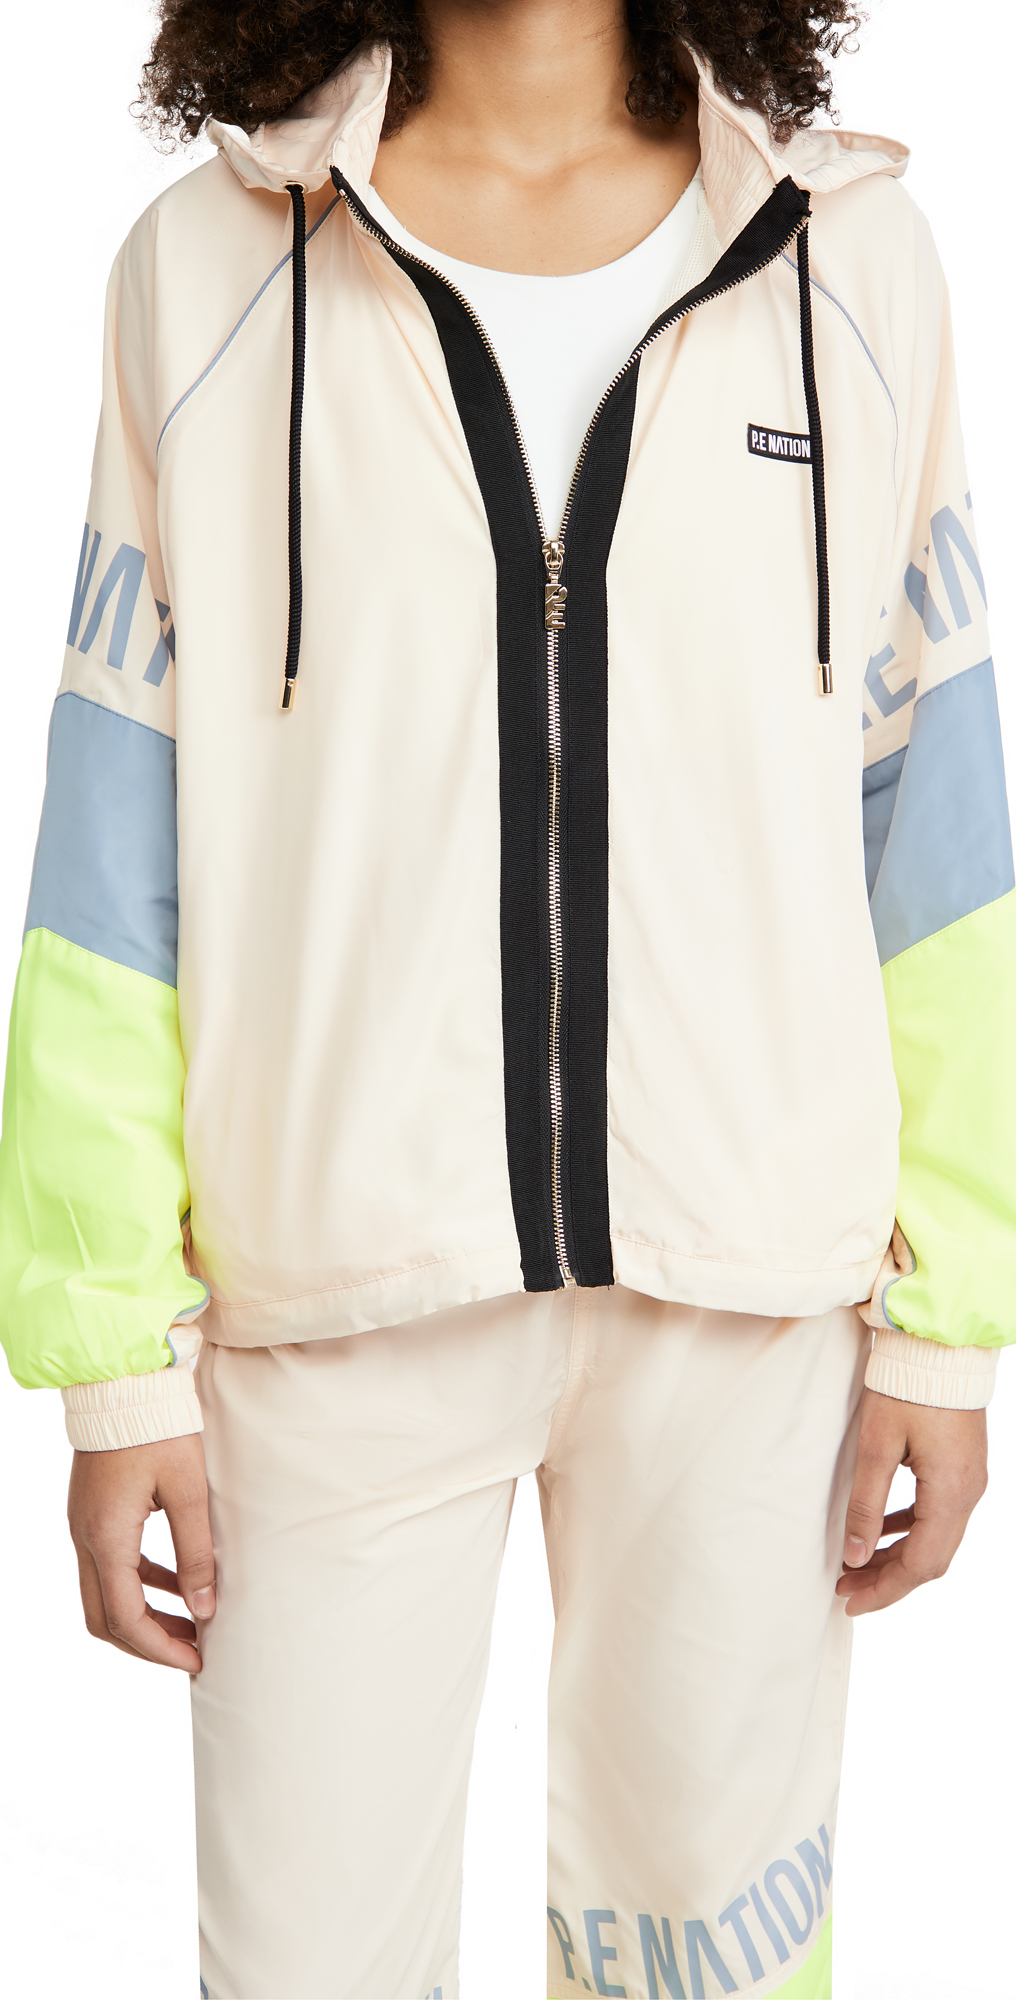 P.E NATION First Position Jacket